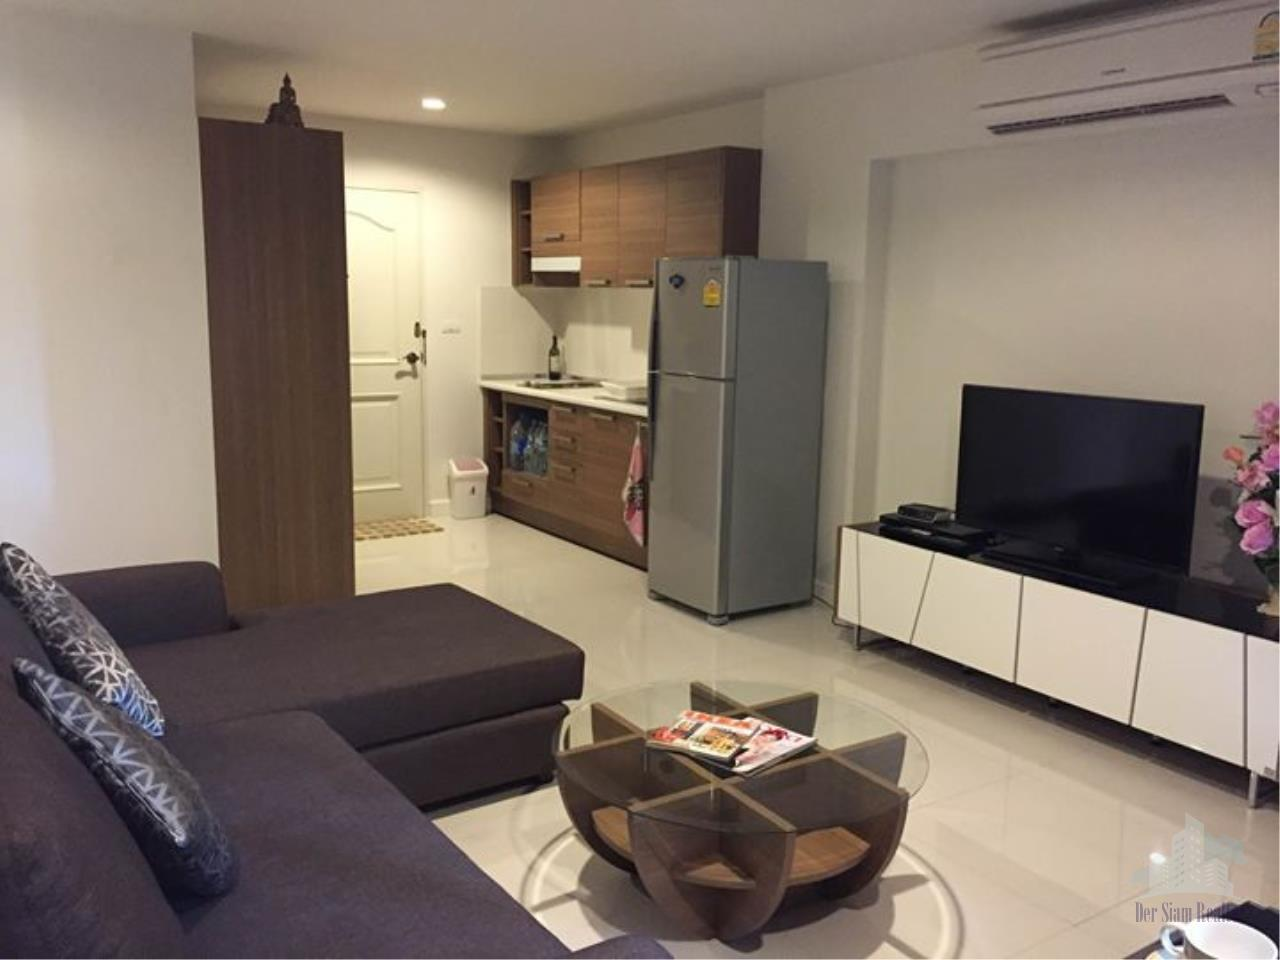 Smart Asset Management Agency's Best Unit!! For Rent Surawong City Resort near BTS chongnonsi /   2 bedroom  1 bathroom   56 sq.m.   1